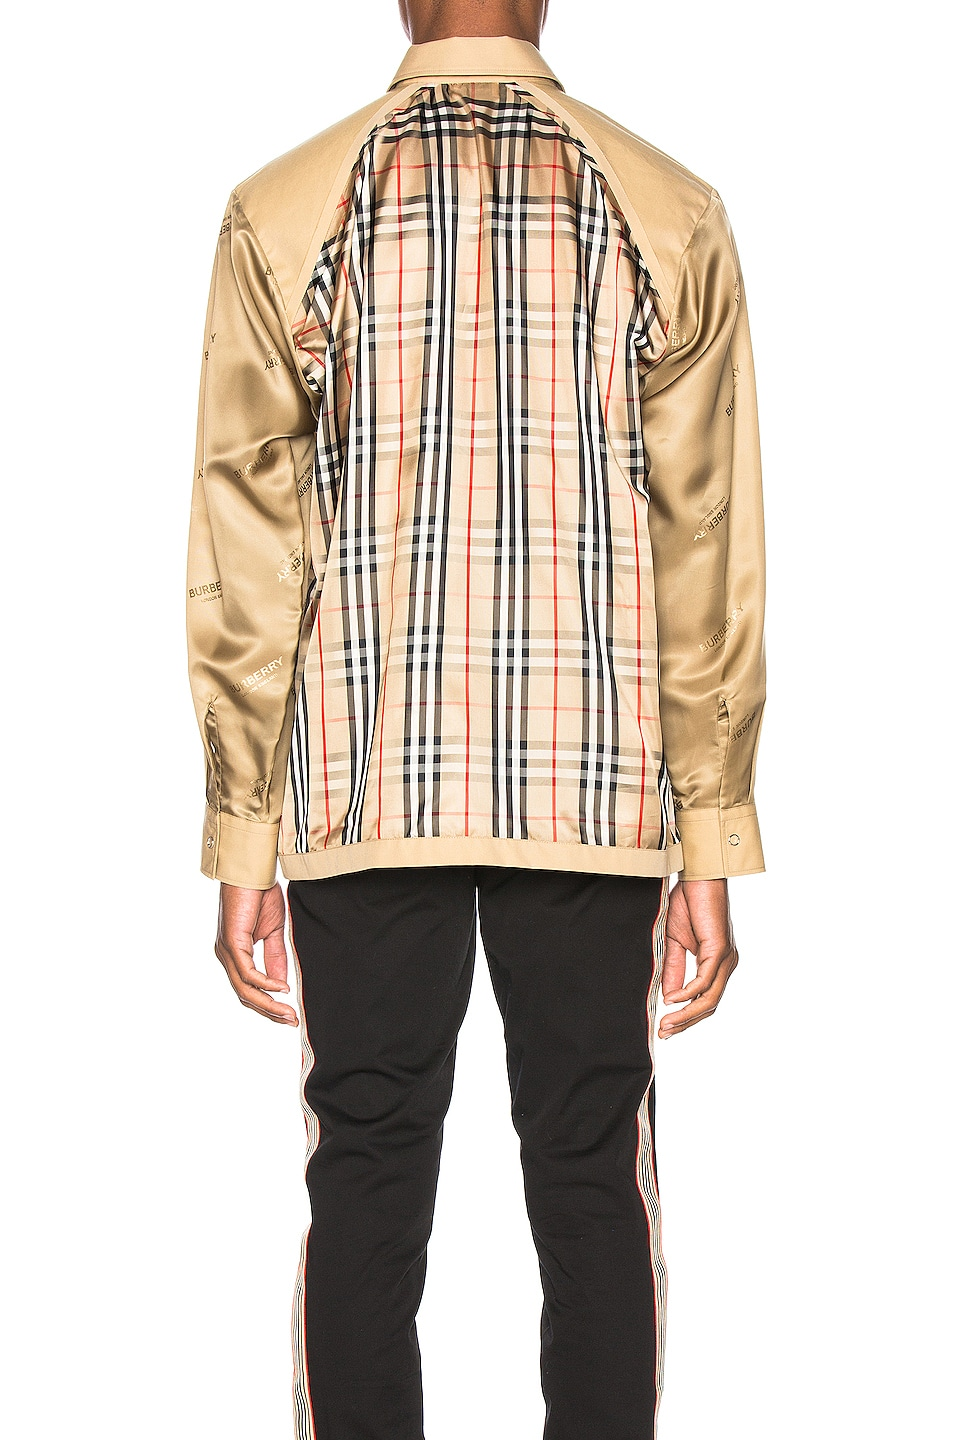 Image 4 of Burberry Runway Check Raglan Shirt in Archive Beige Check